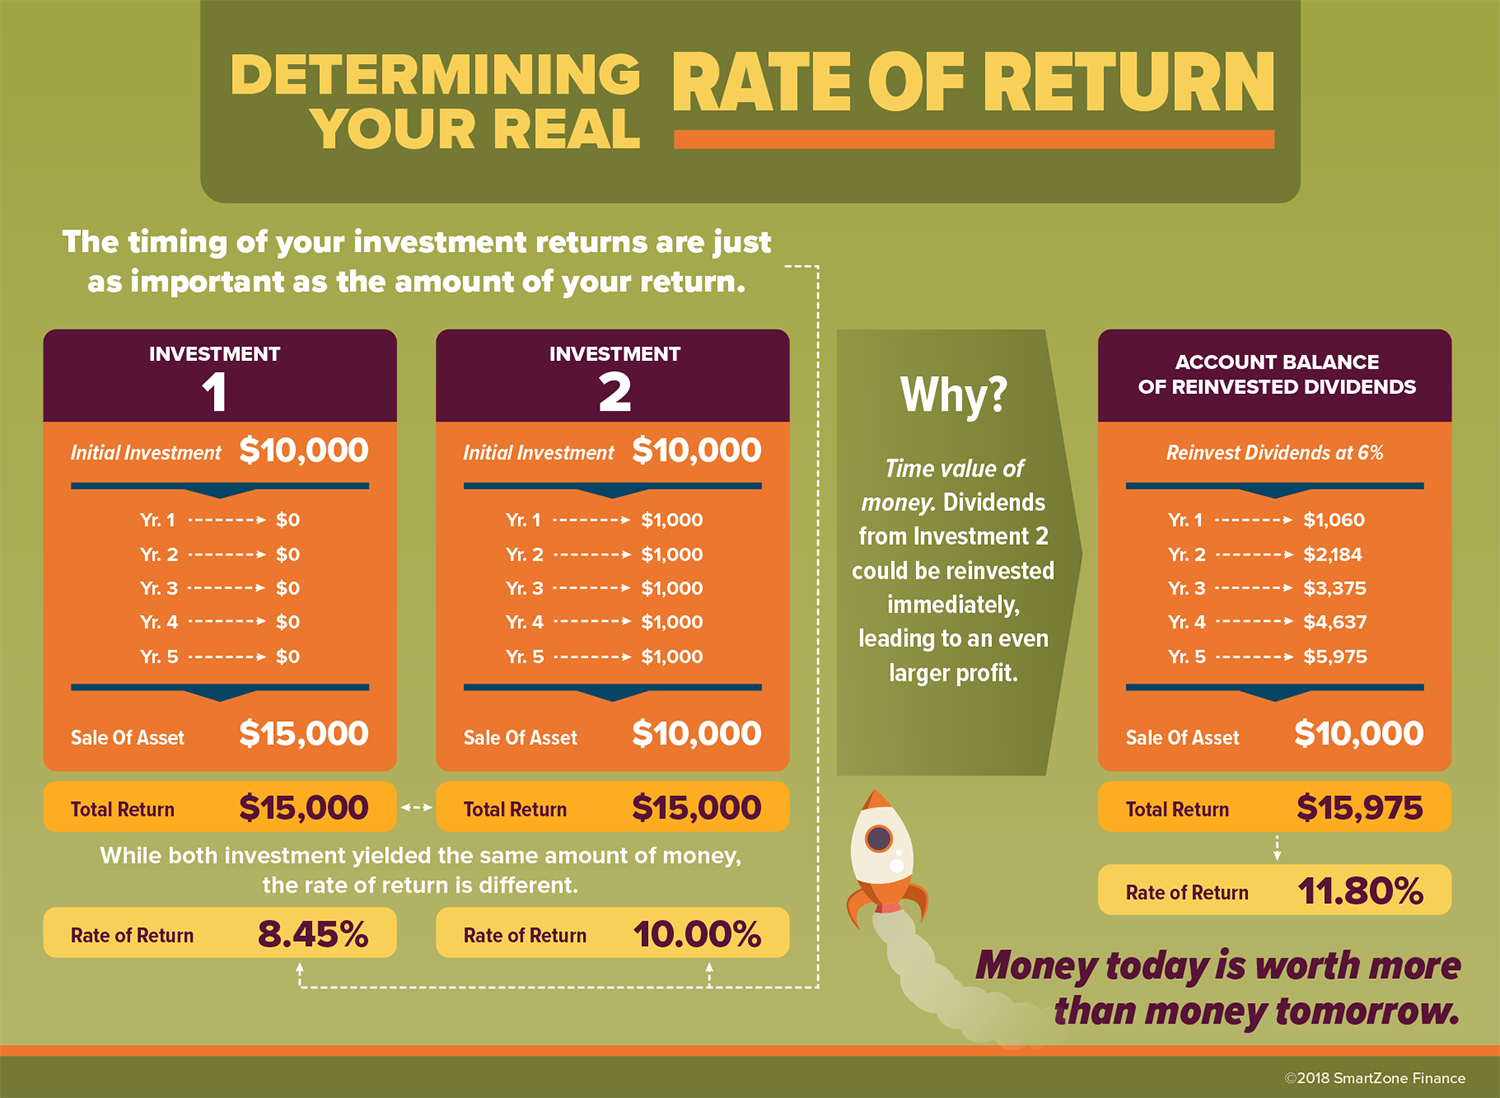 Determining Your Real Rate Of Return